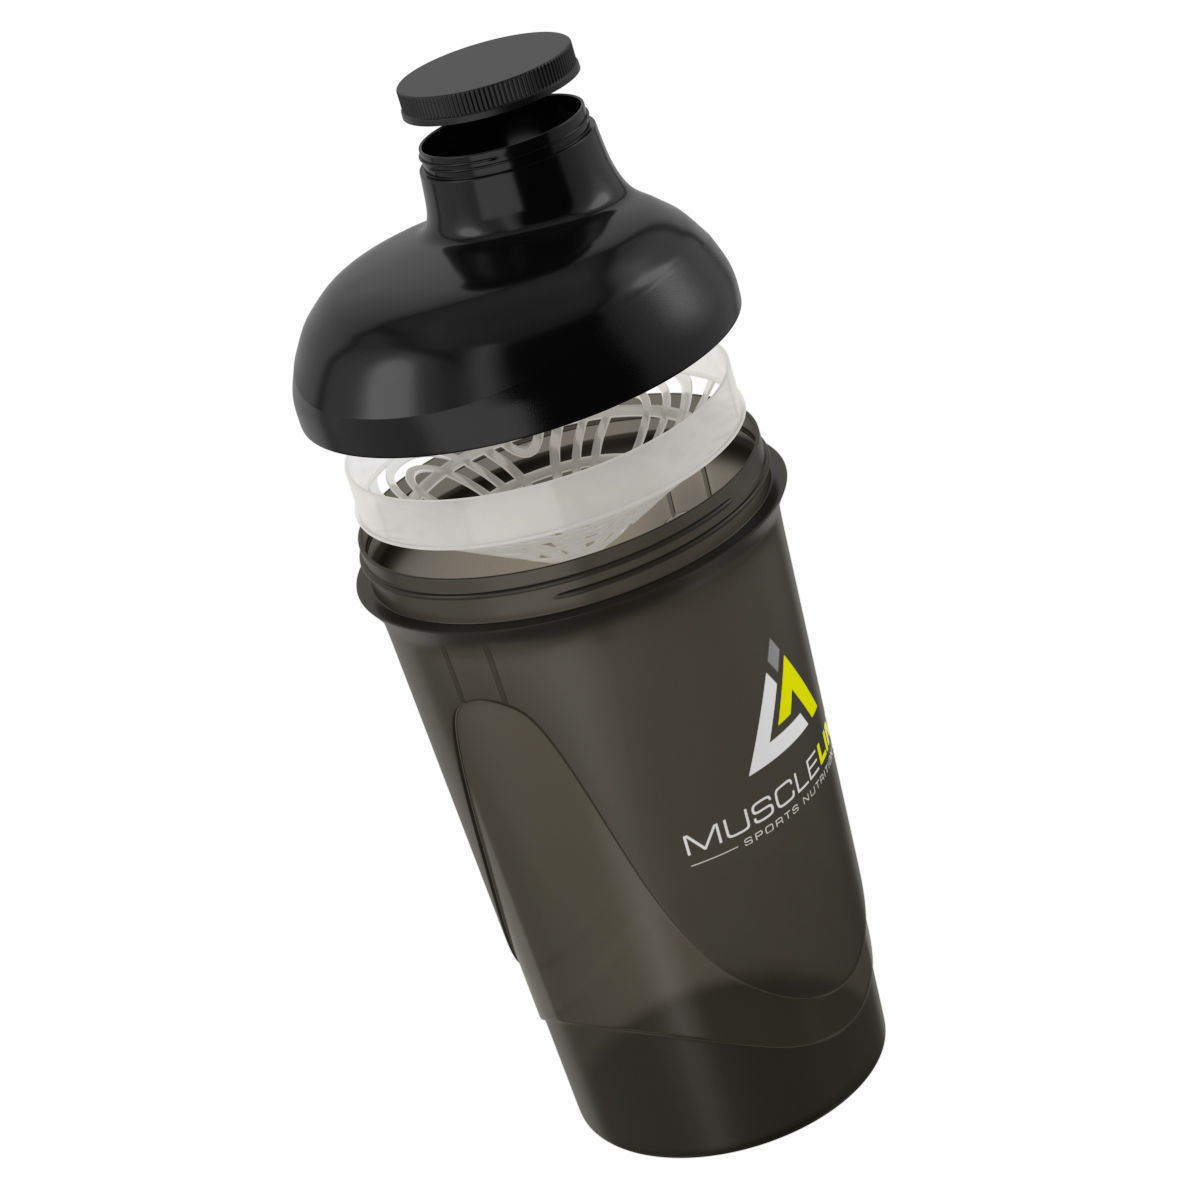 Protein Shaker Mixer - High Detailed